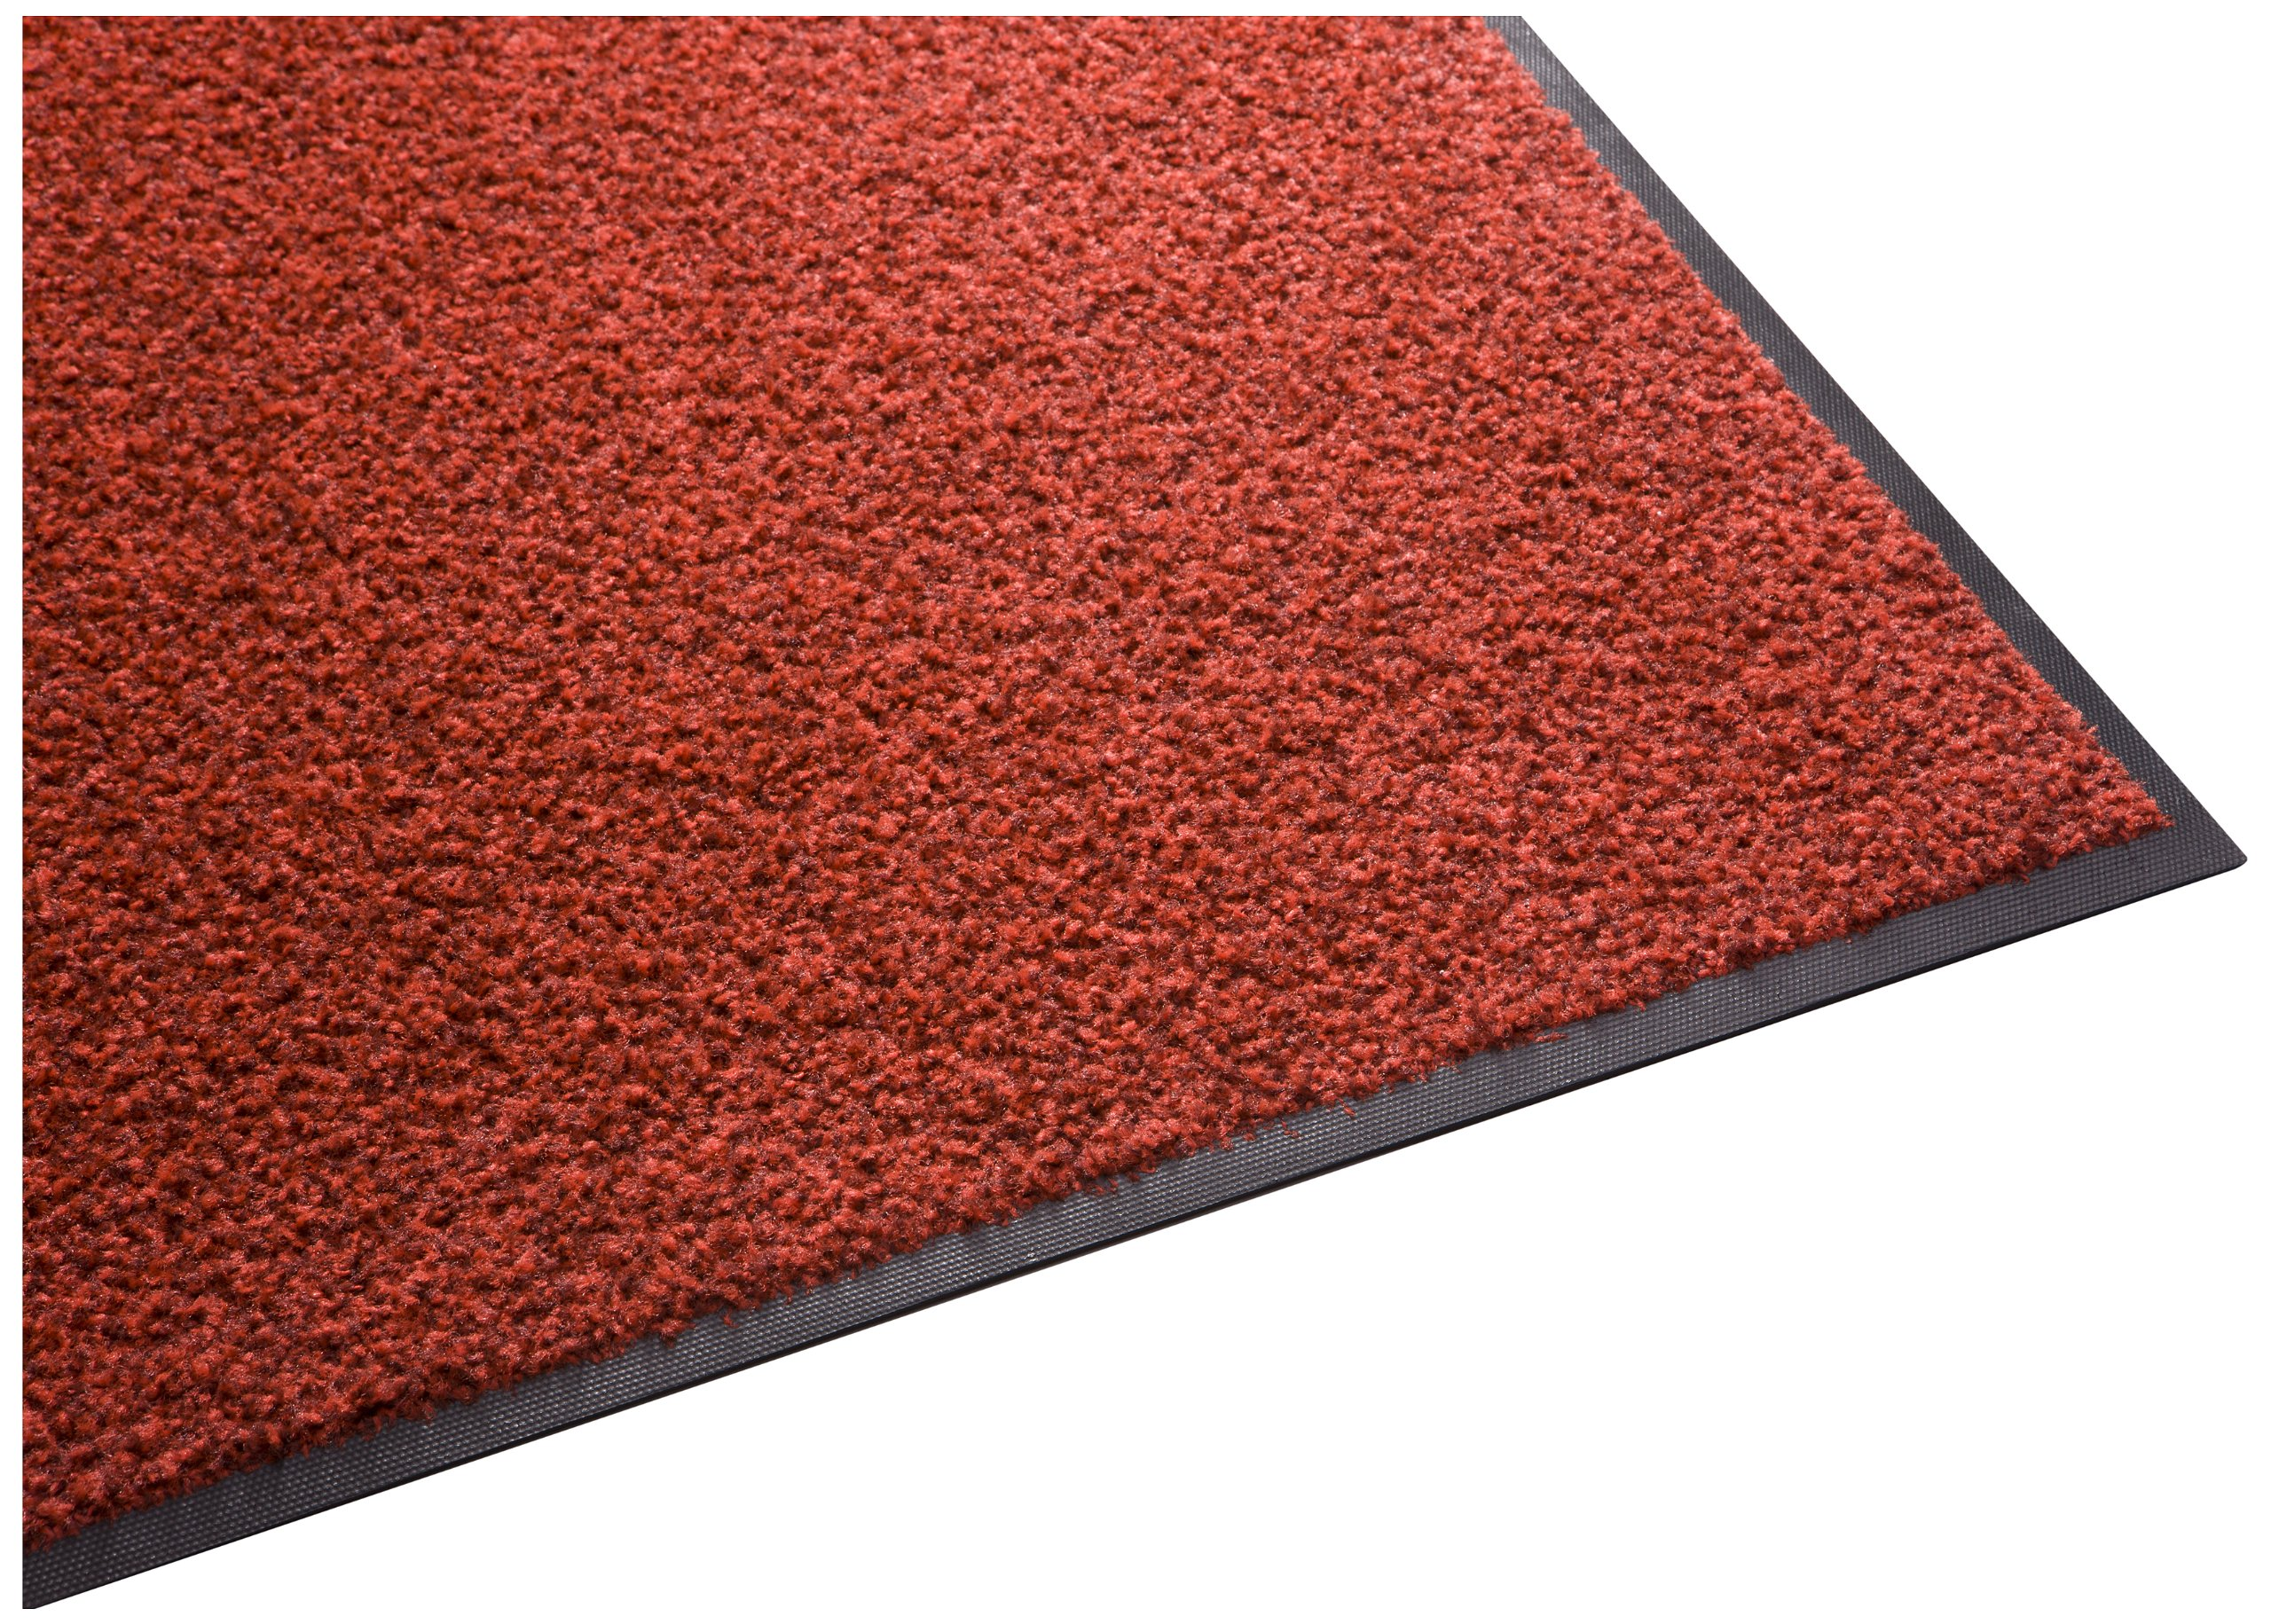 Guardian Platinum Series Indoor Wiper Floor Mat, Rubber with Nylon Carpet, 6'x7', Red by Guardian